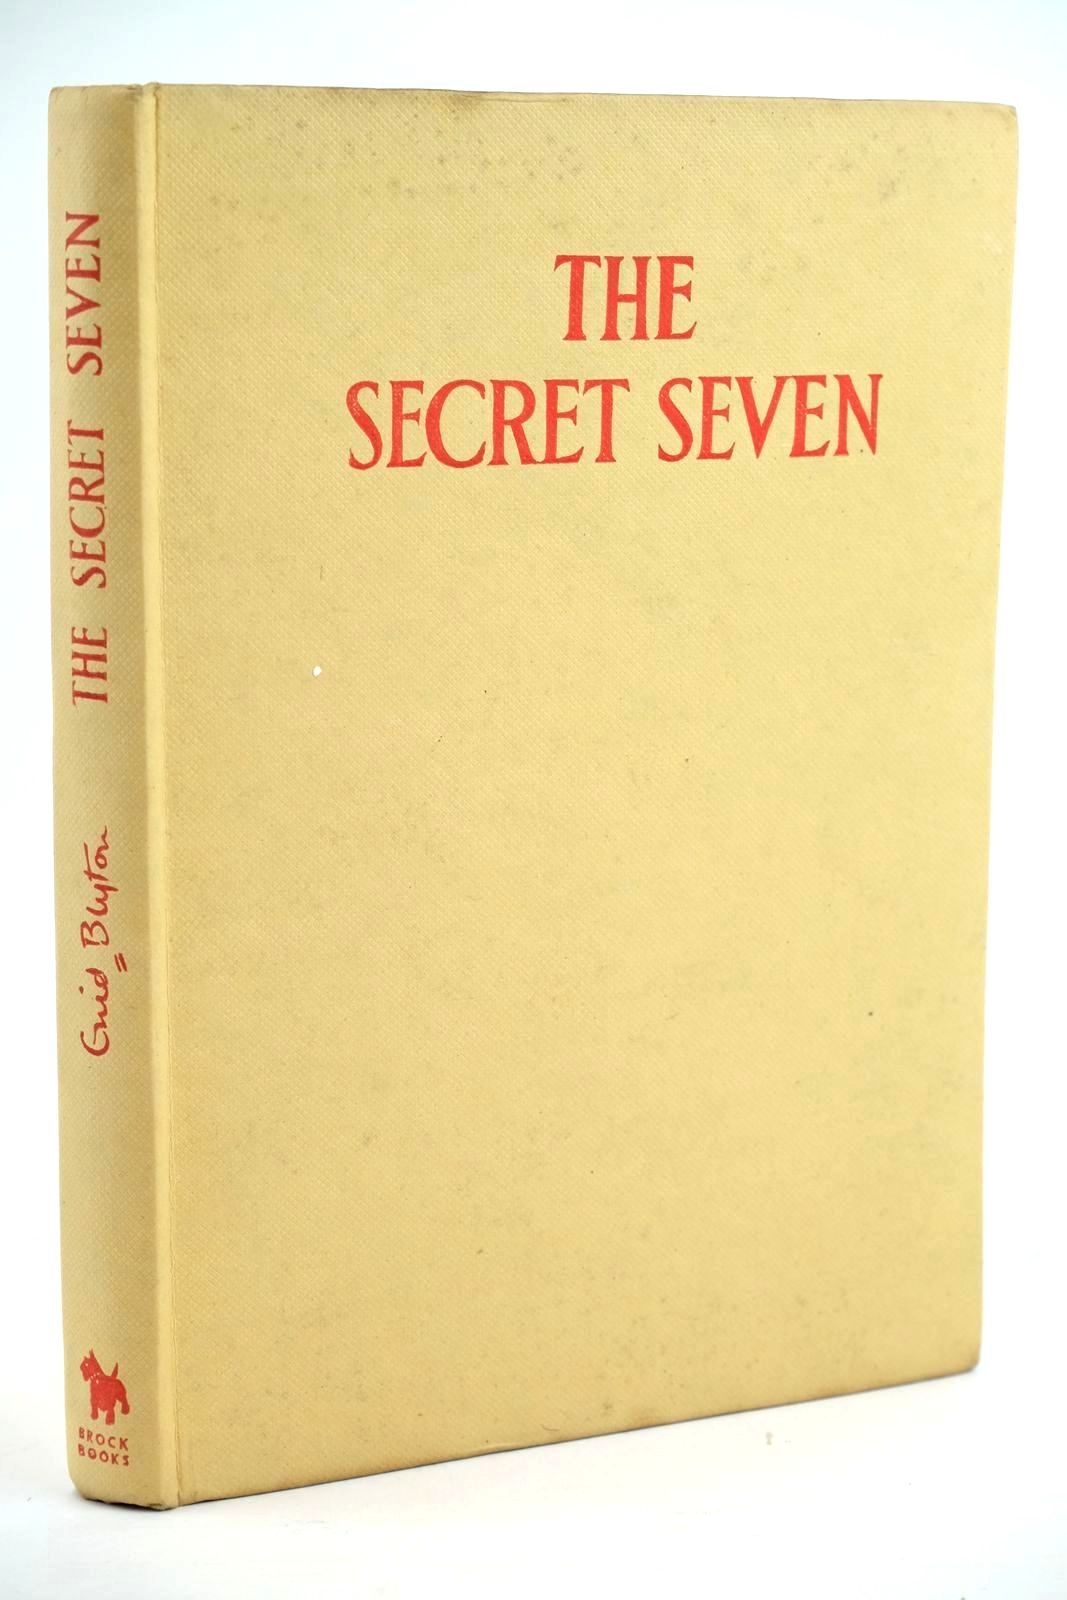 Photo of THE SECRET SEVEN written by Blyton, Enid illustrated by Brook, George published by The Brockhampton Press Ltd. (STOCK CODE: 1319505)  for sale by Stella & Rose's Books